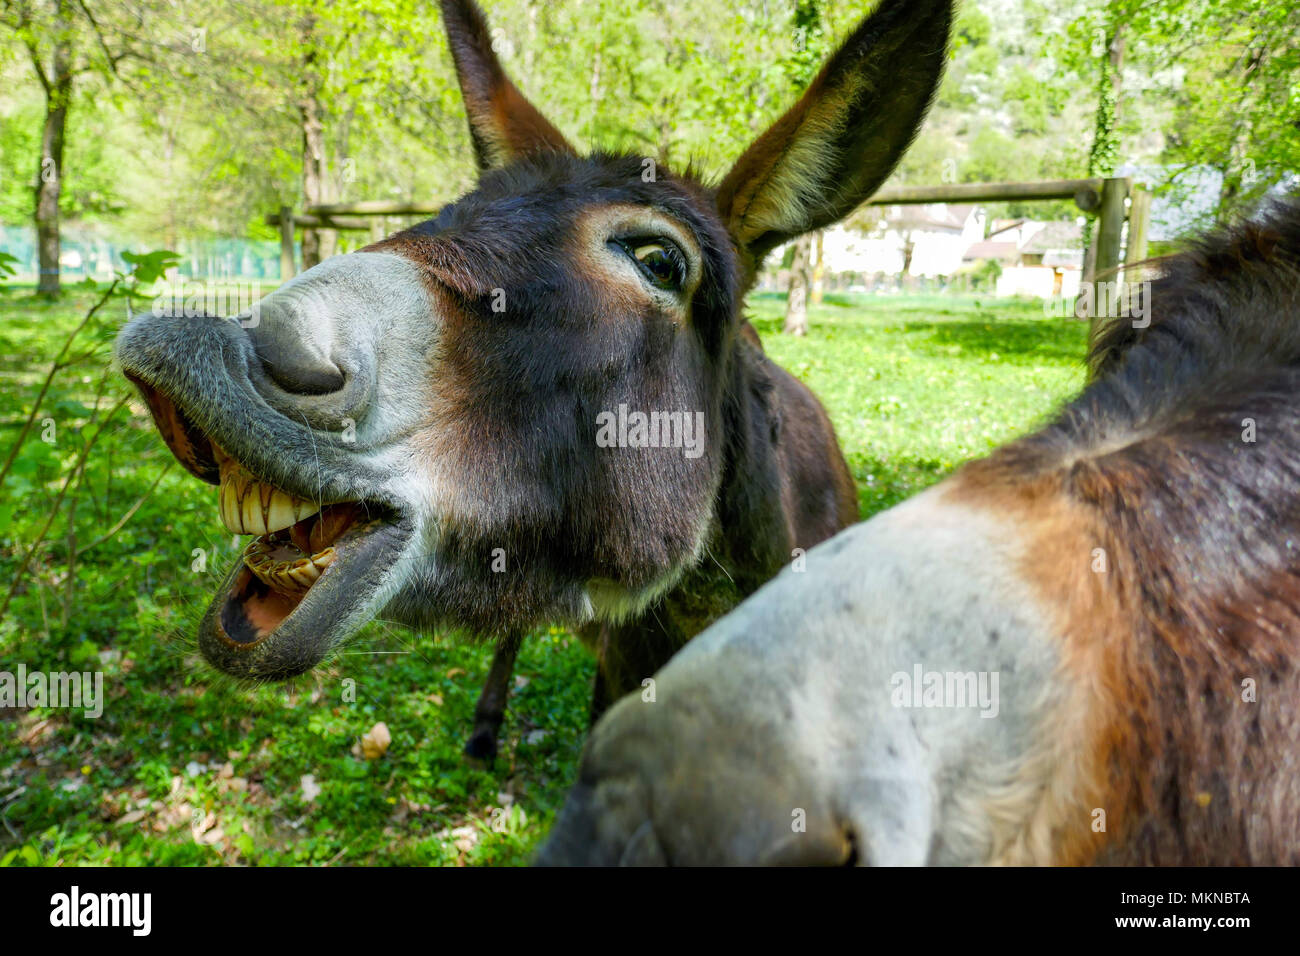 two Donkey, mule with teeth, asses looking at the camera - Stock Image